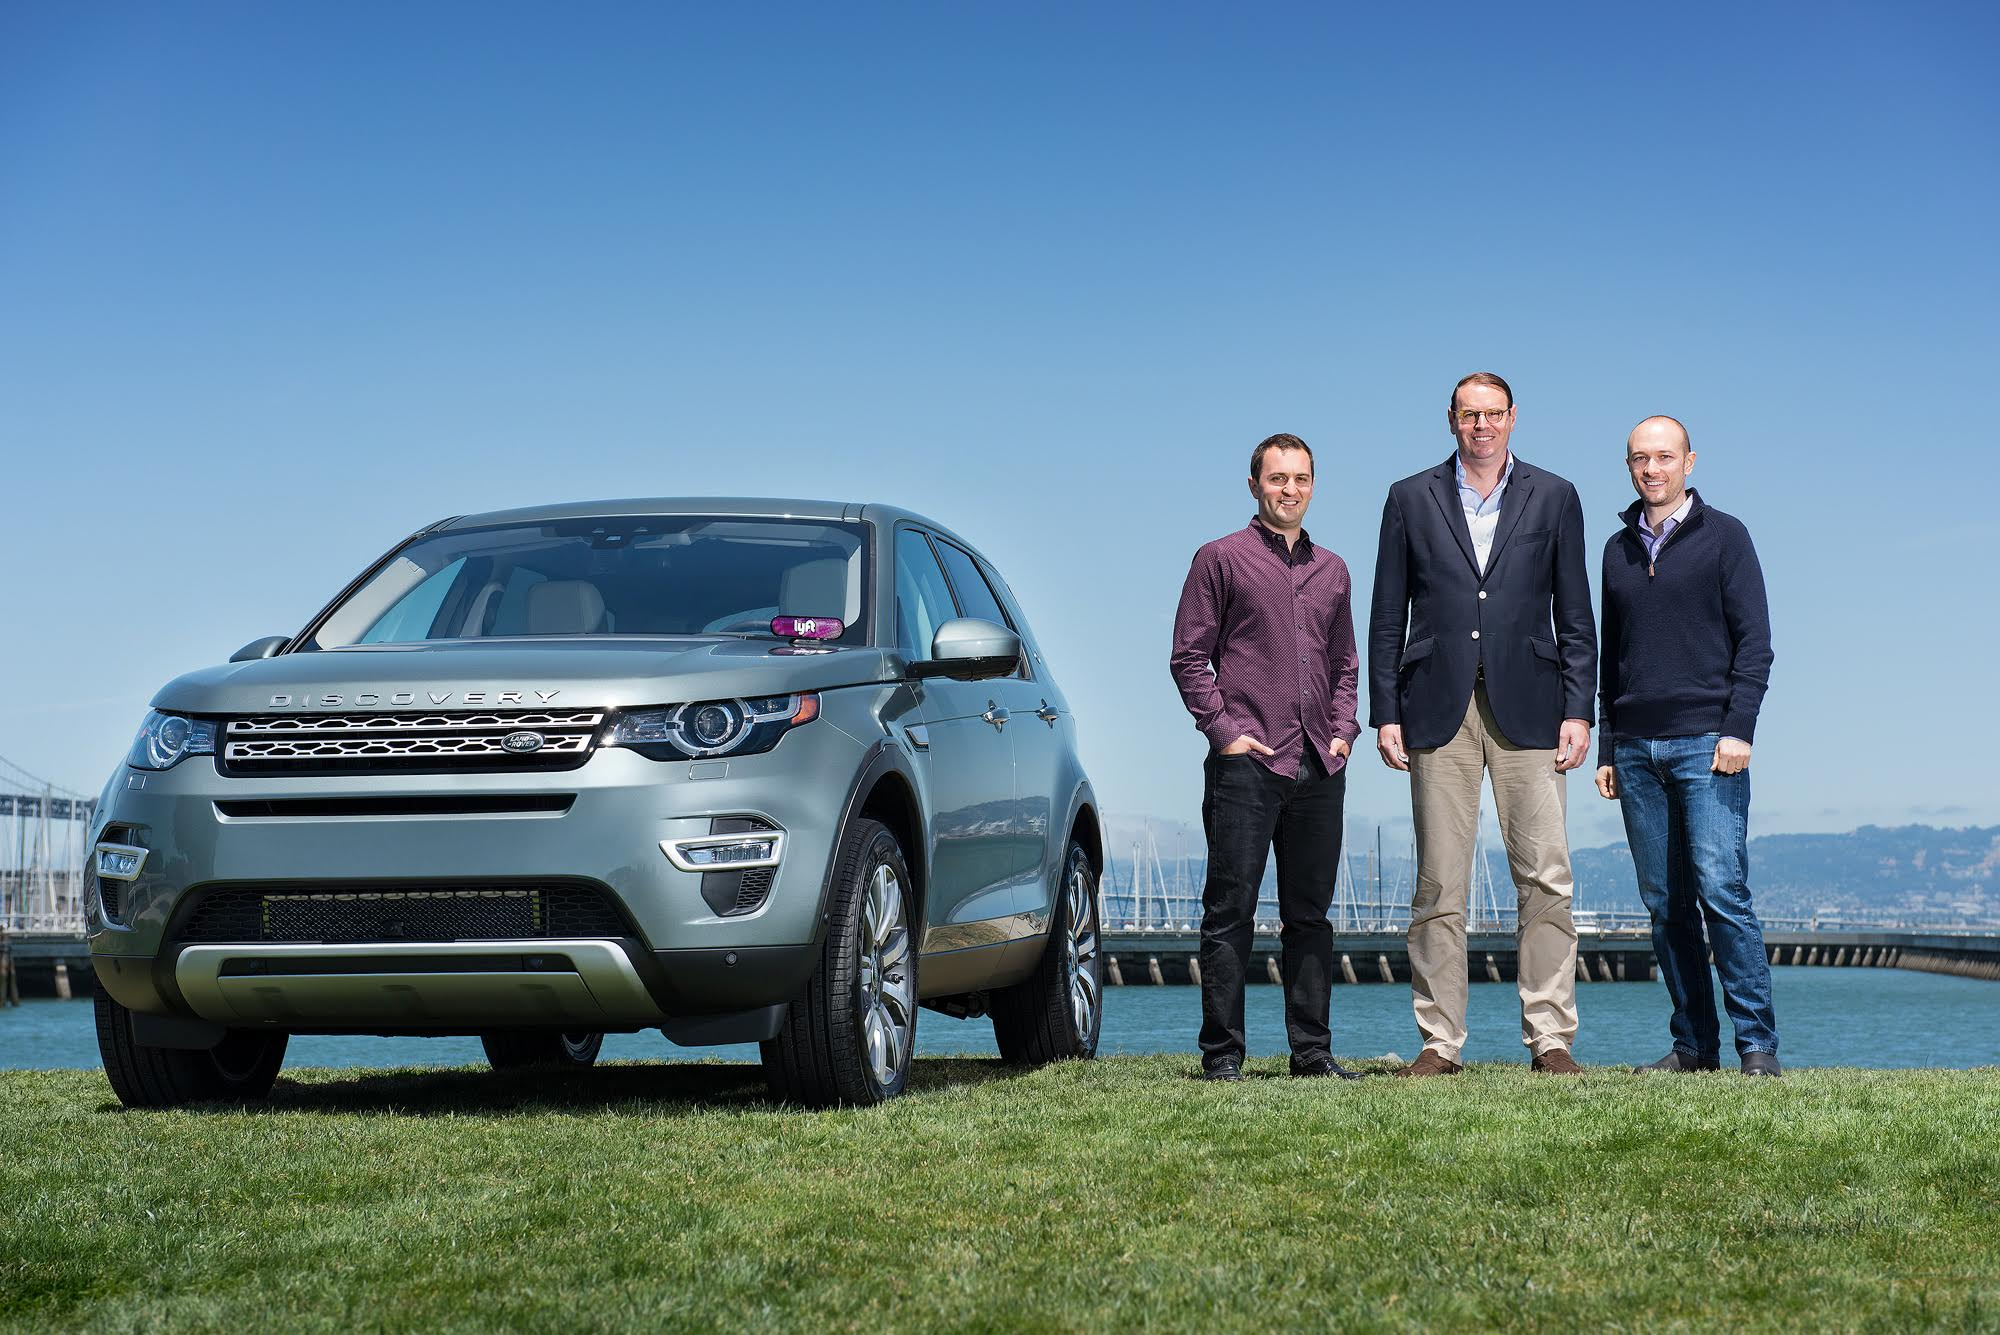 Representatives from Jaguar Land Rover, Lyft, and InMotion